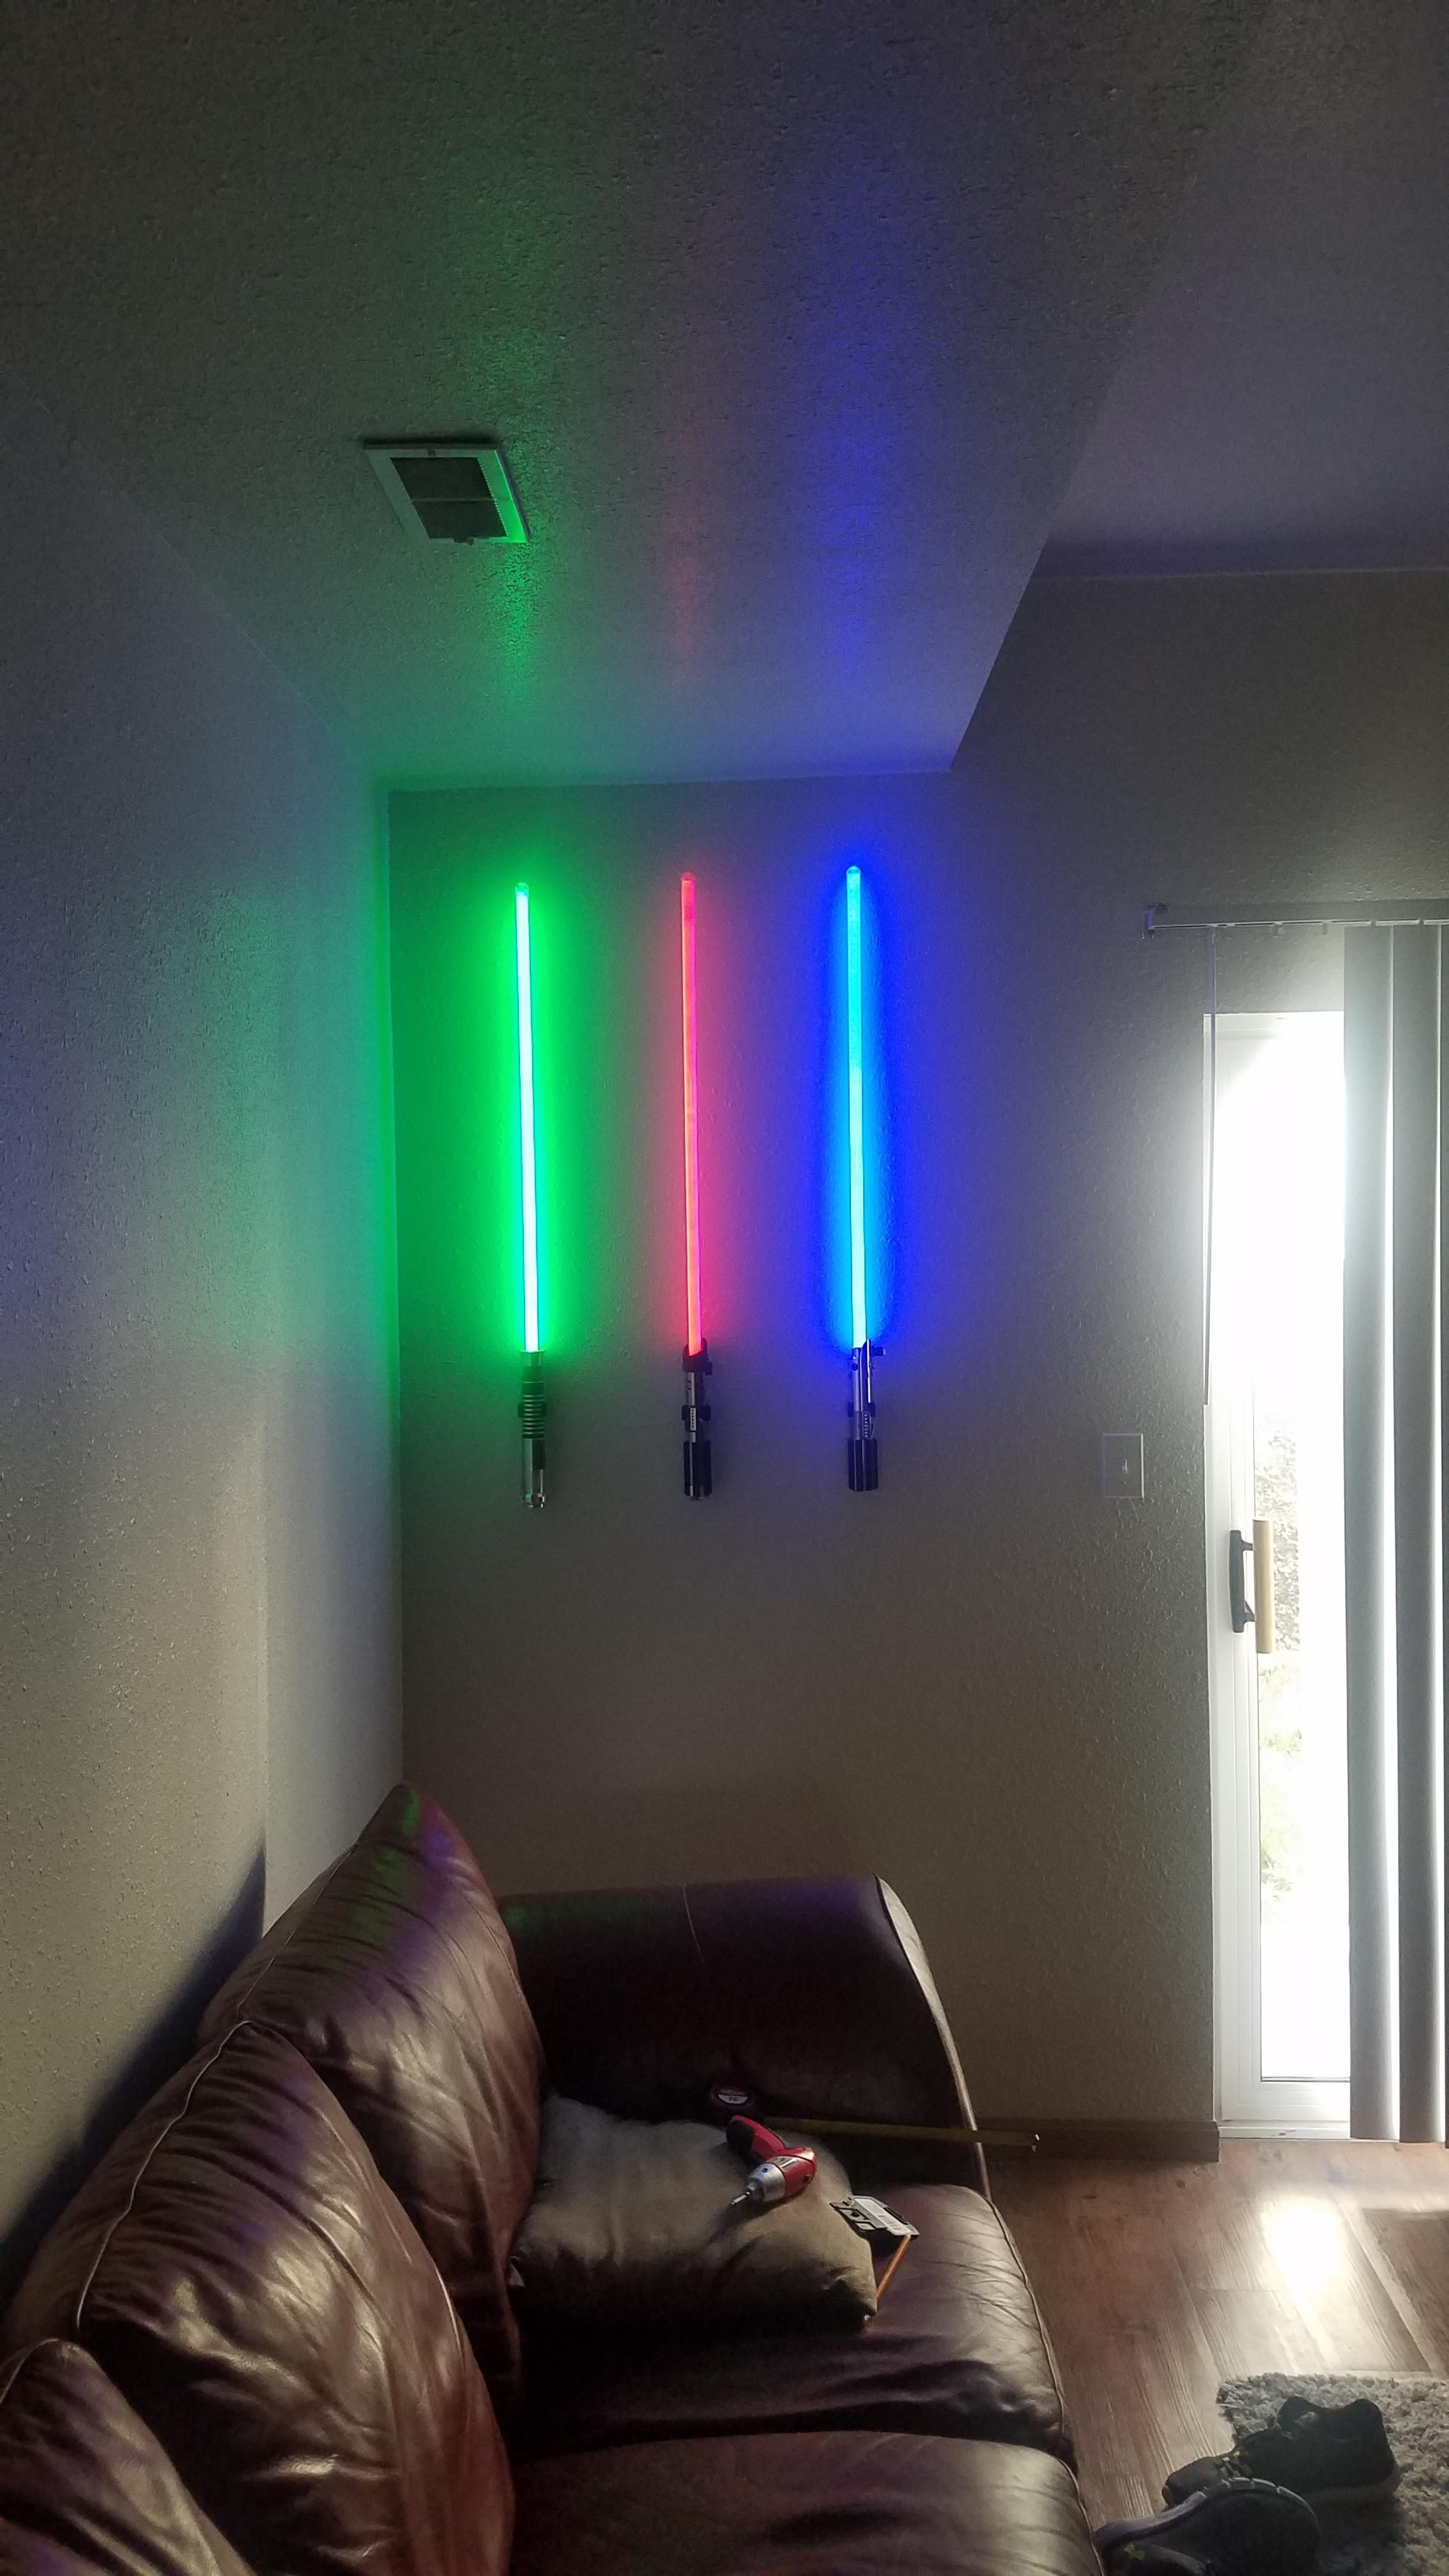 Thought R Starwars Would Appreciate My Wall Mounted Lightsabers Https Ift Tt 2kcmkbd Game Room Design Industrial Apartment Decor Avengers Room